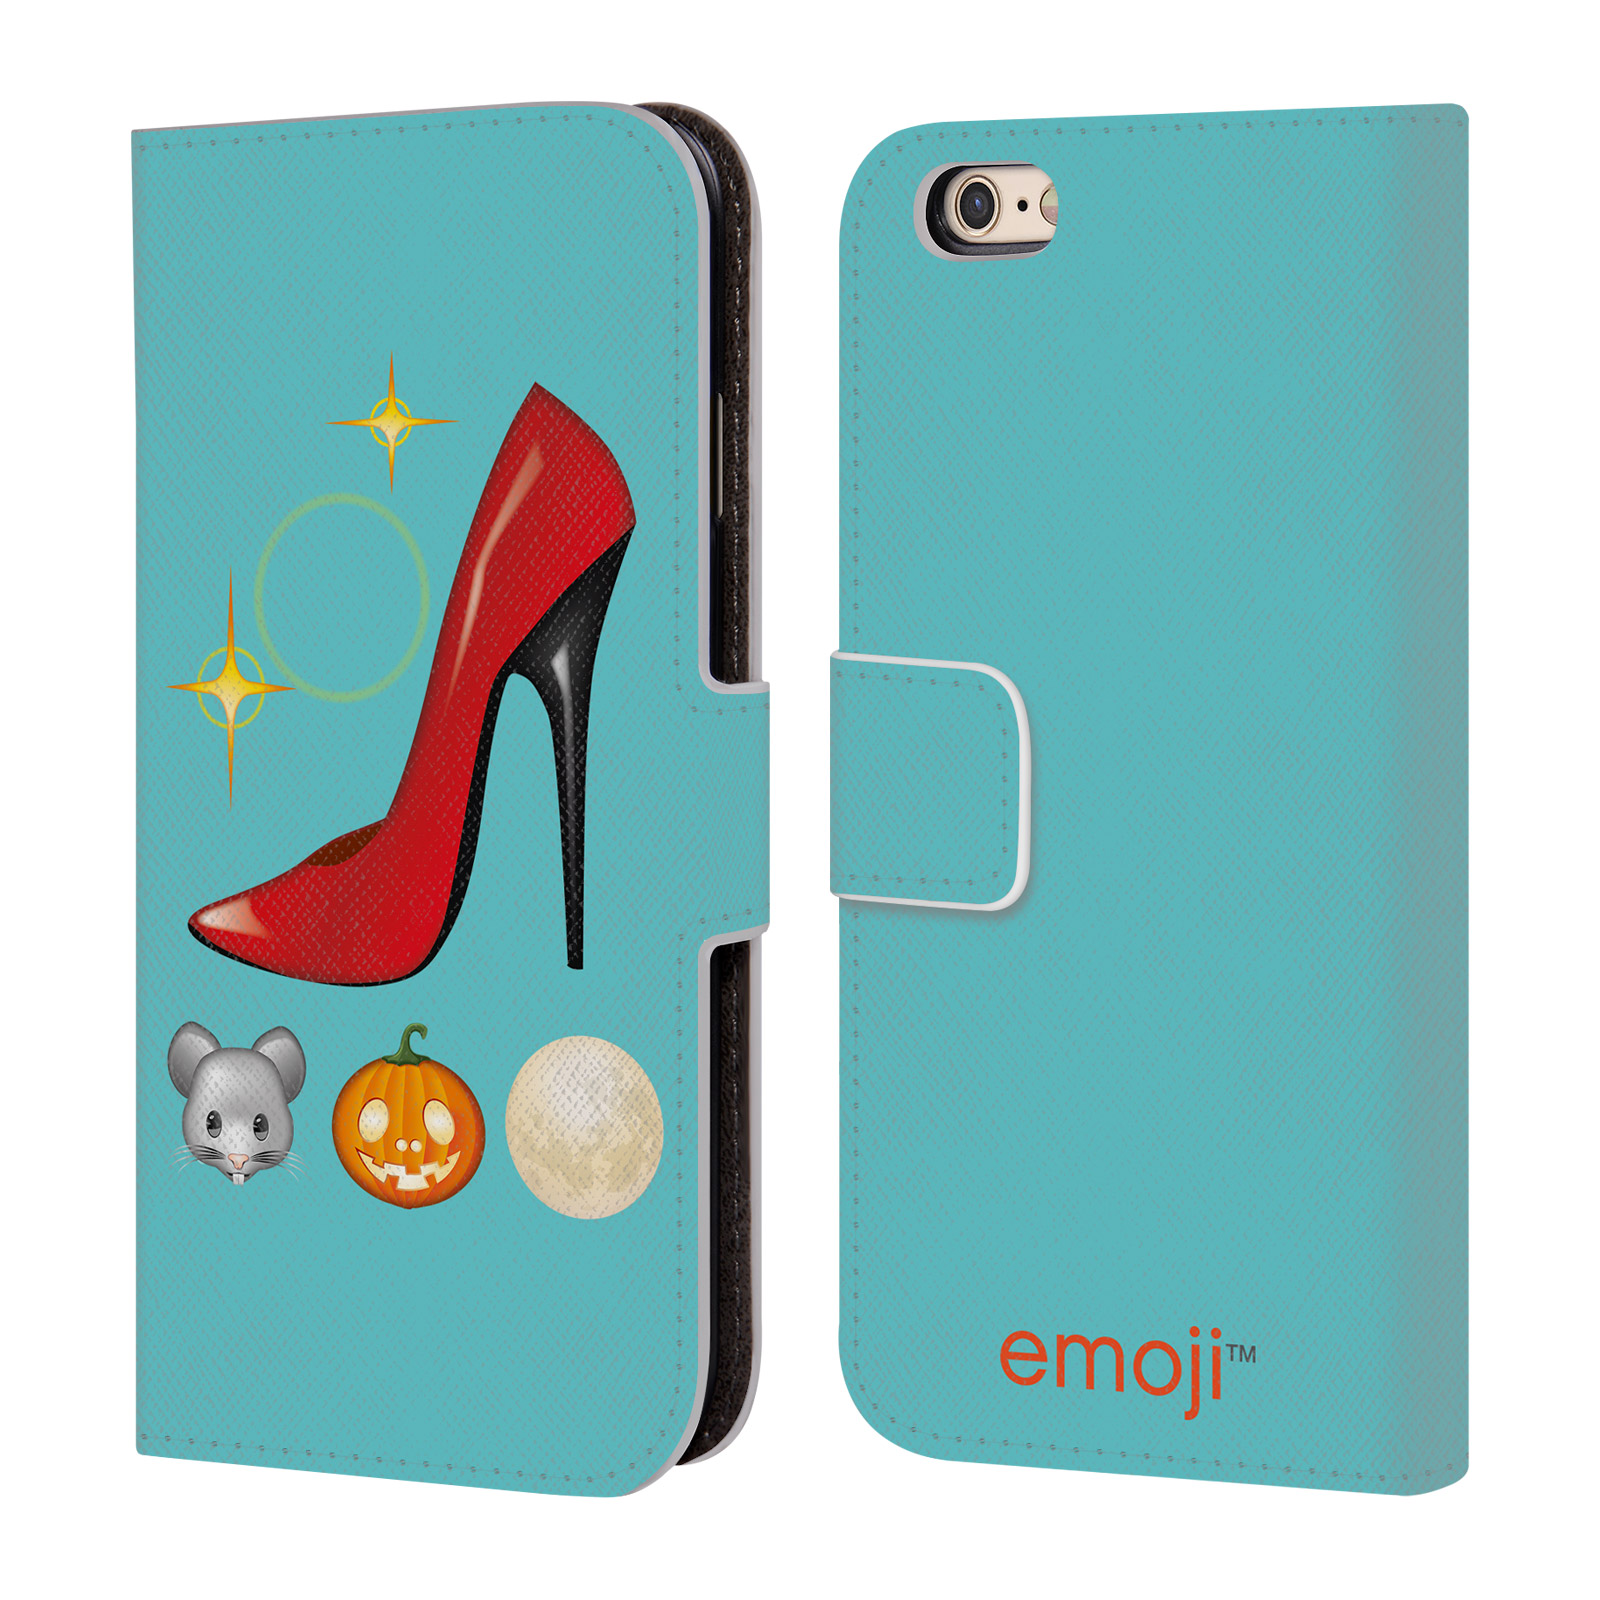 OFFICIAL EMOJI MOVIES AND SERIES LEATHER BOOK WALLET CASE COVER FOR APPLE IPHONE PHONES